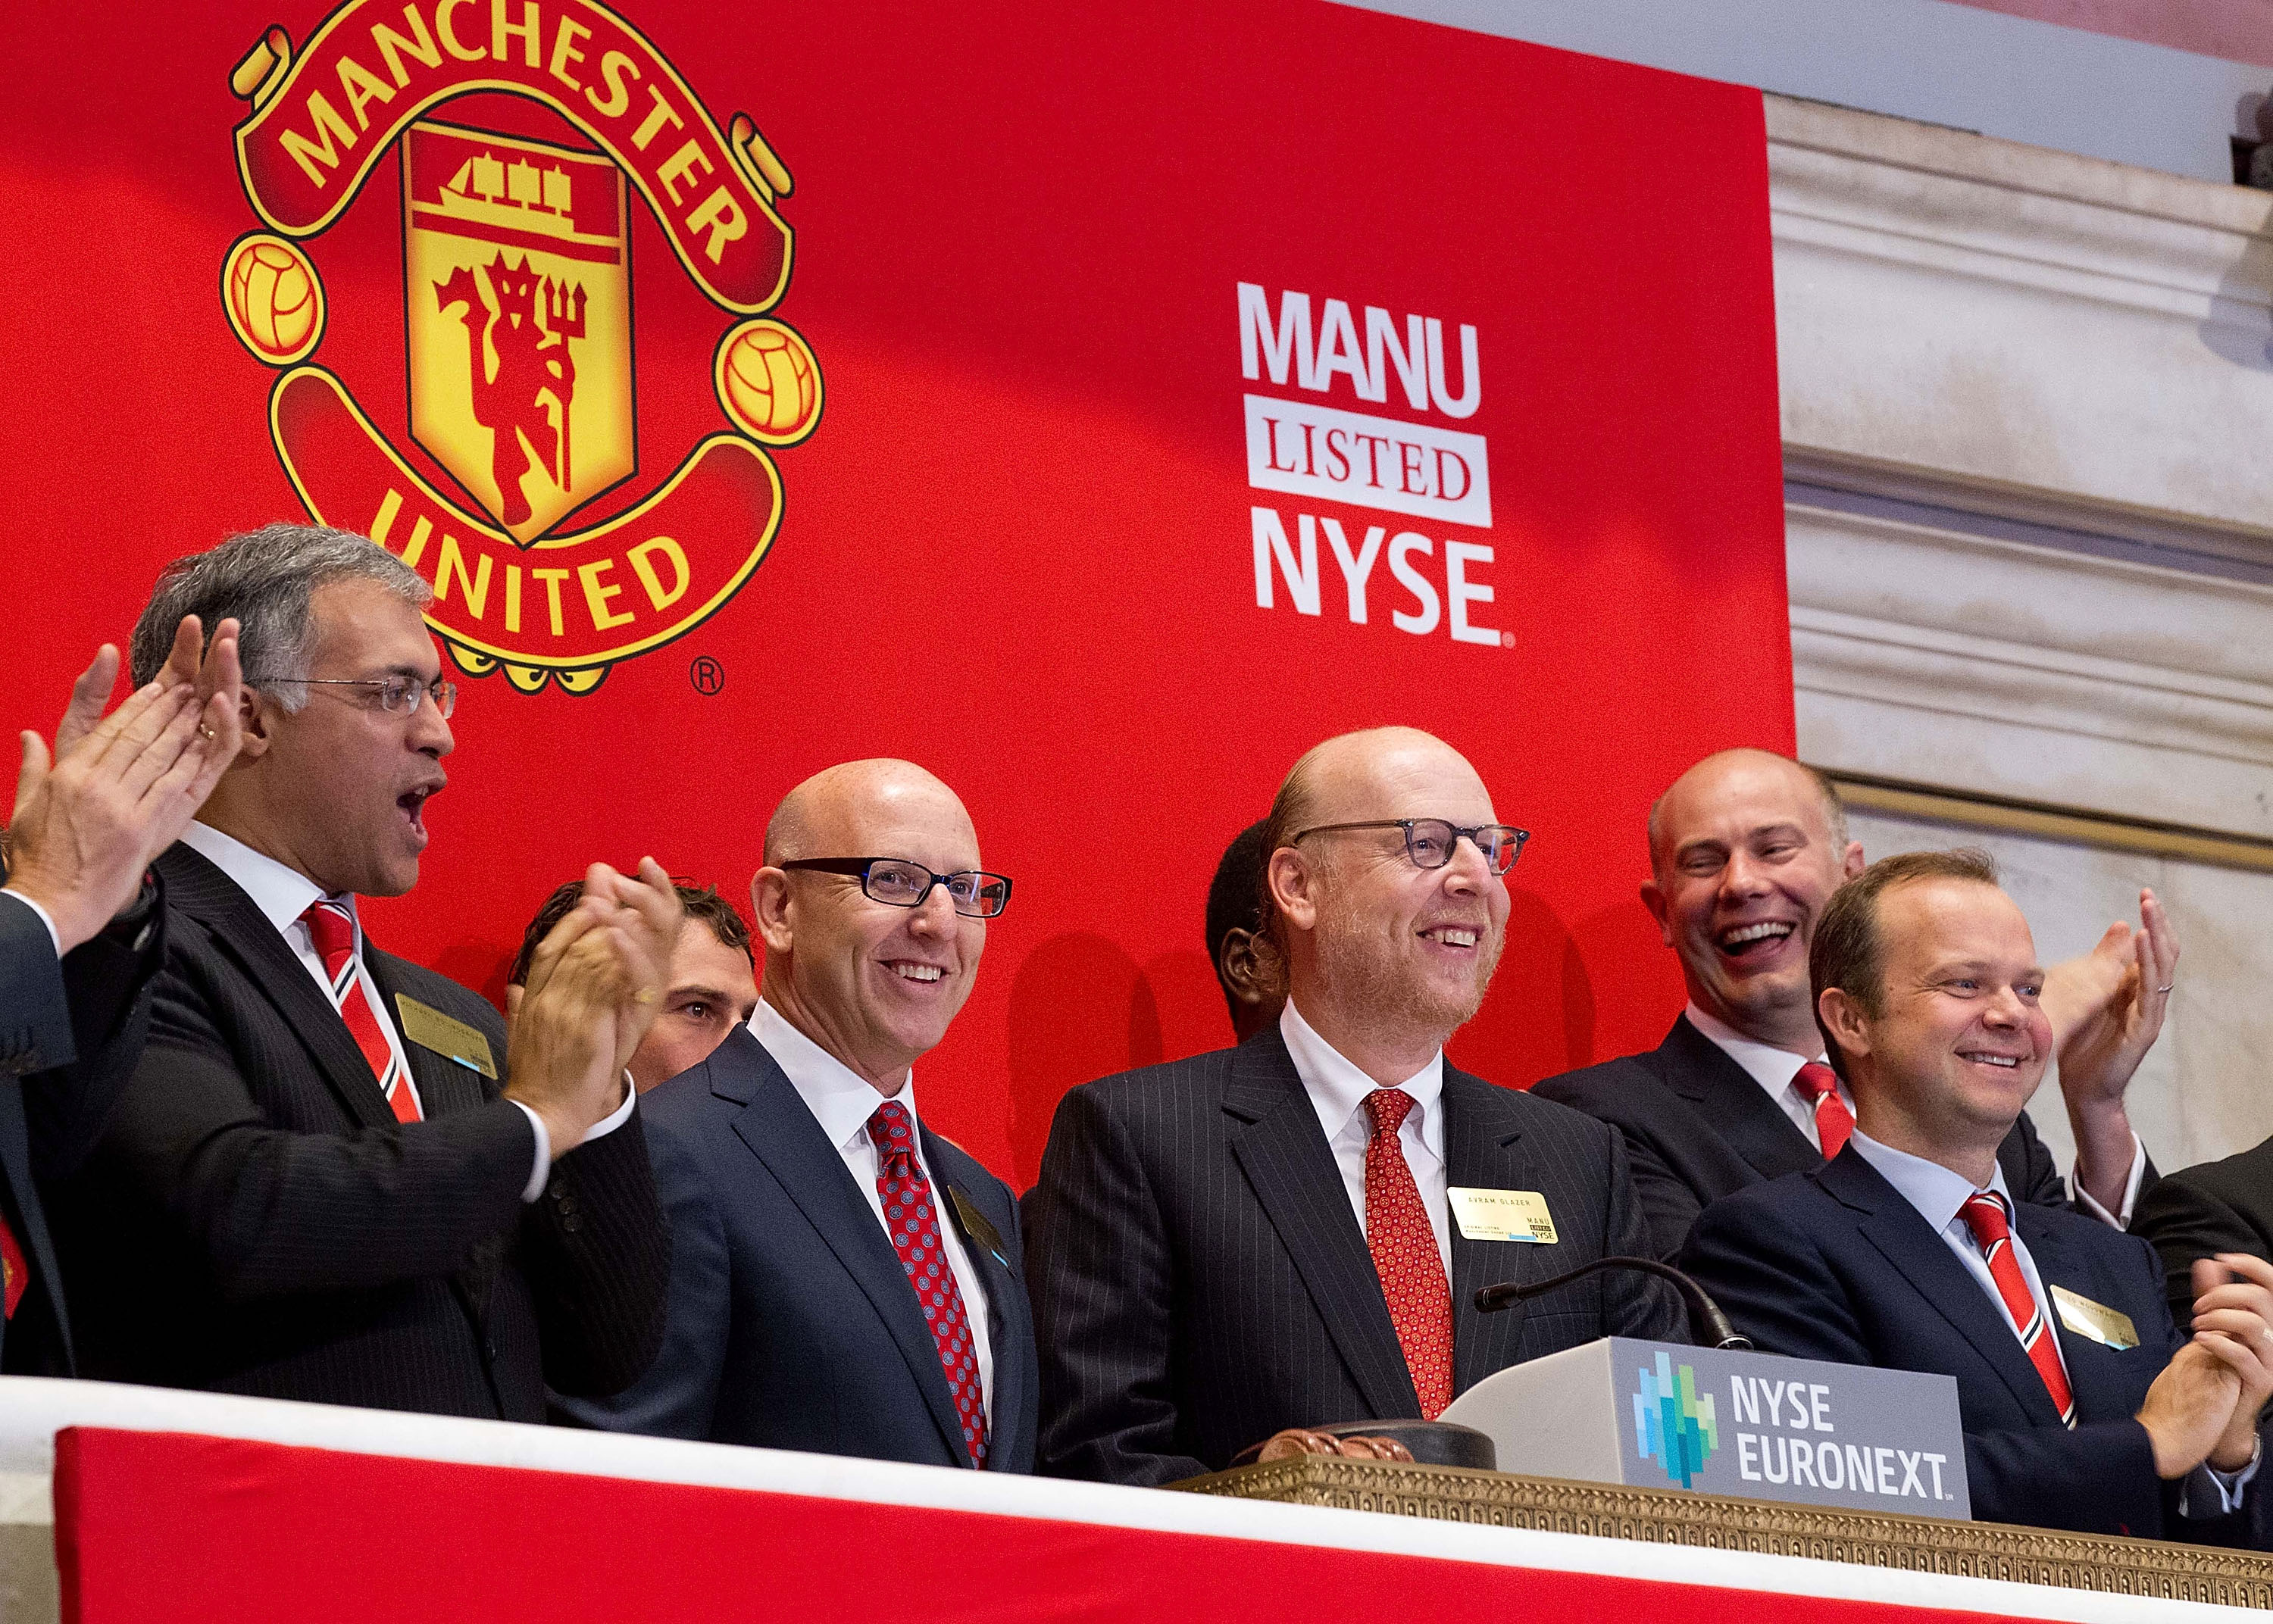 Ed Woodward assisted the Glazers' take over of Manchester United (Photo Dario Cantatore/Getty Images via NYSE Euronext)